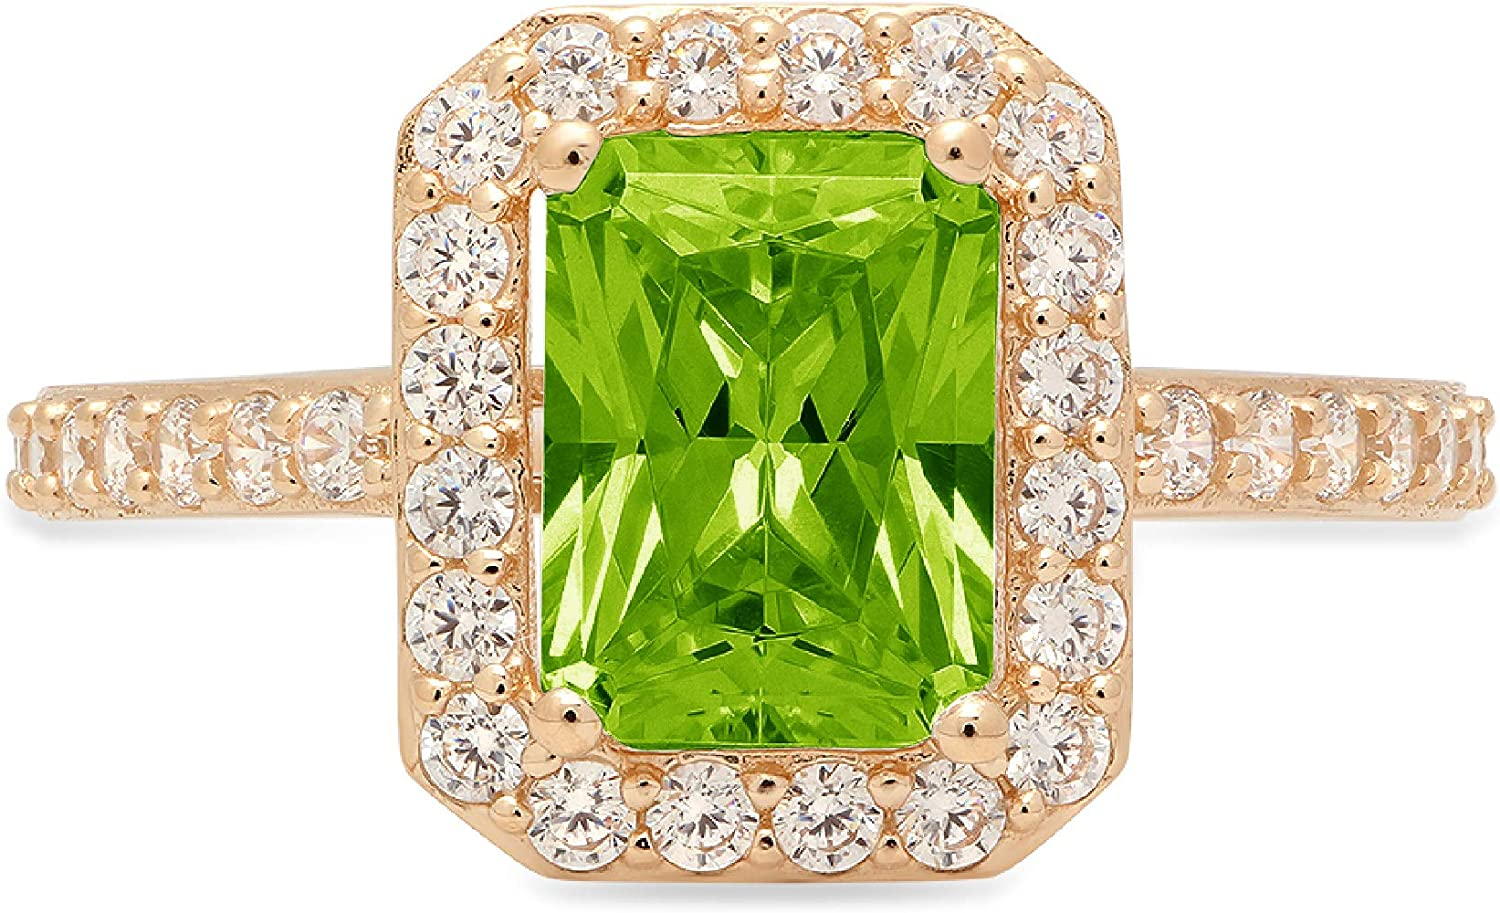 2.04ct Brilliant Emerald Cut Solitaire with Accent Halo Flawless Genuine Natural Pure Green Peridot Gemstone VVS1 Designer Modern Statement Ring Solid 14k Yellow Gold